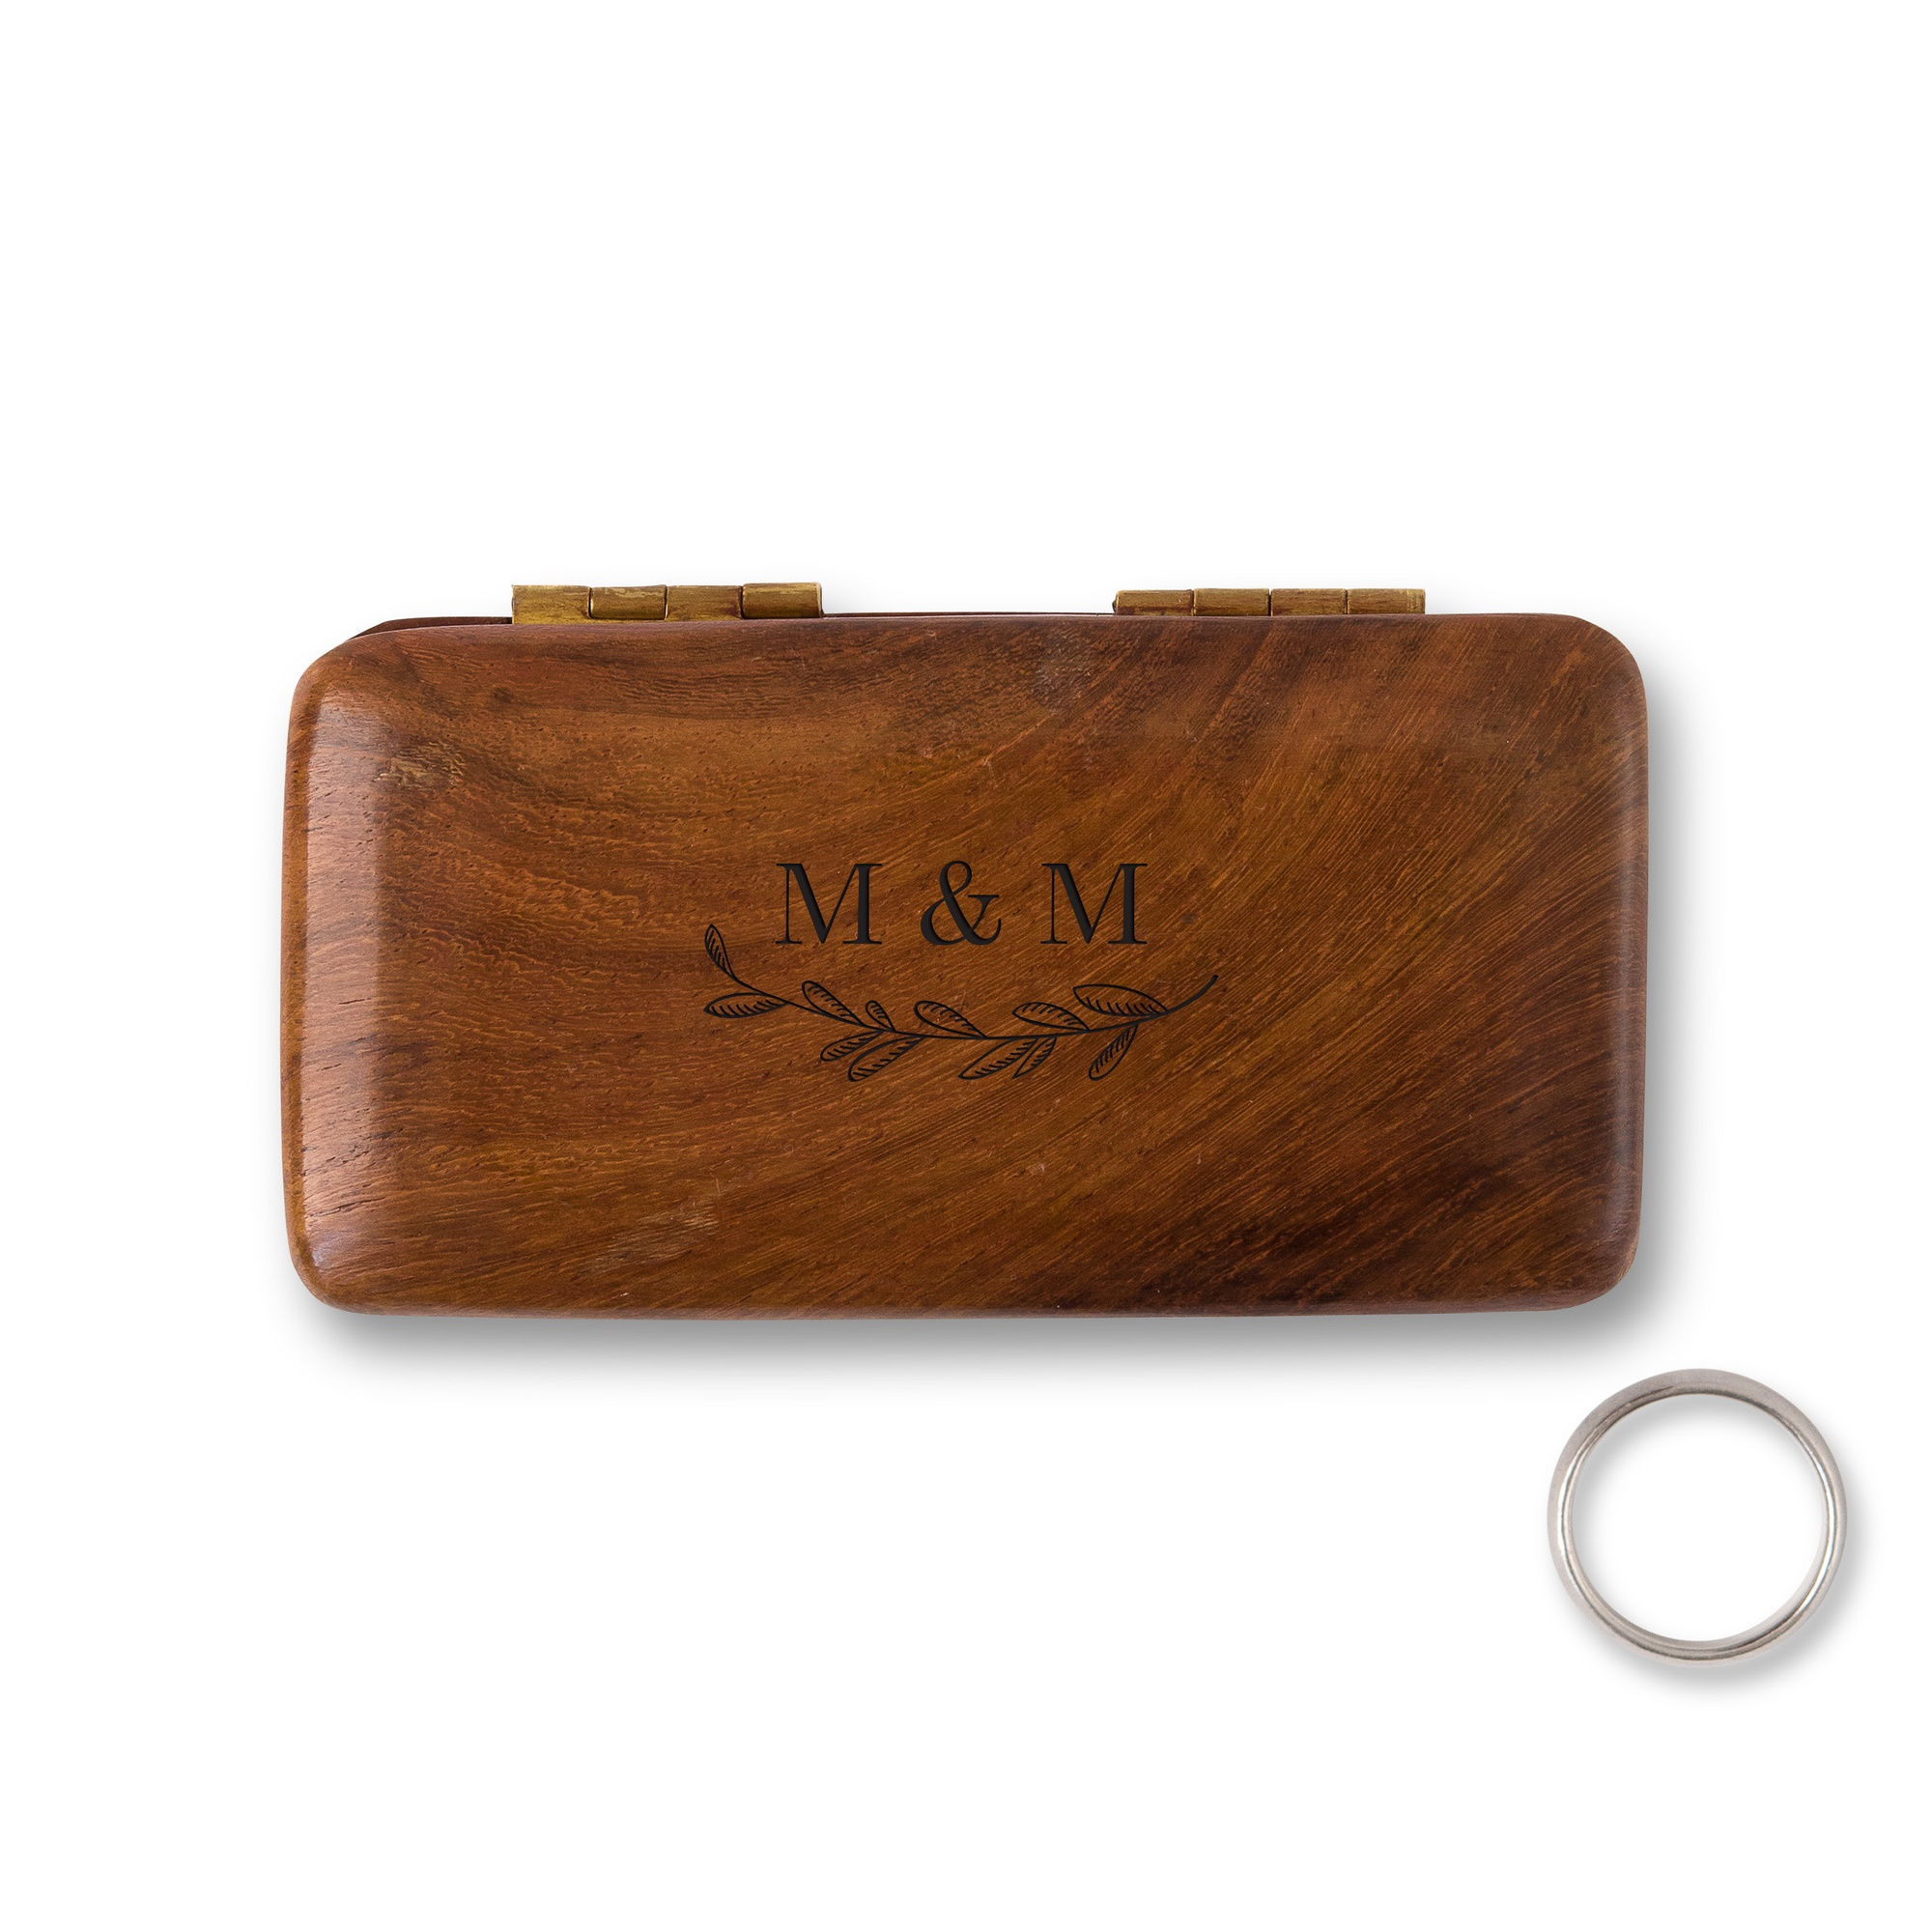 9759-p-1277-106-02-w_natural-charm-personalized-ring-box-garland-under